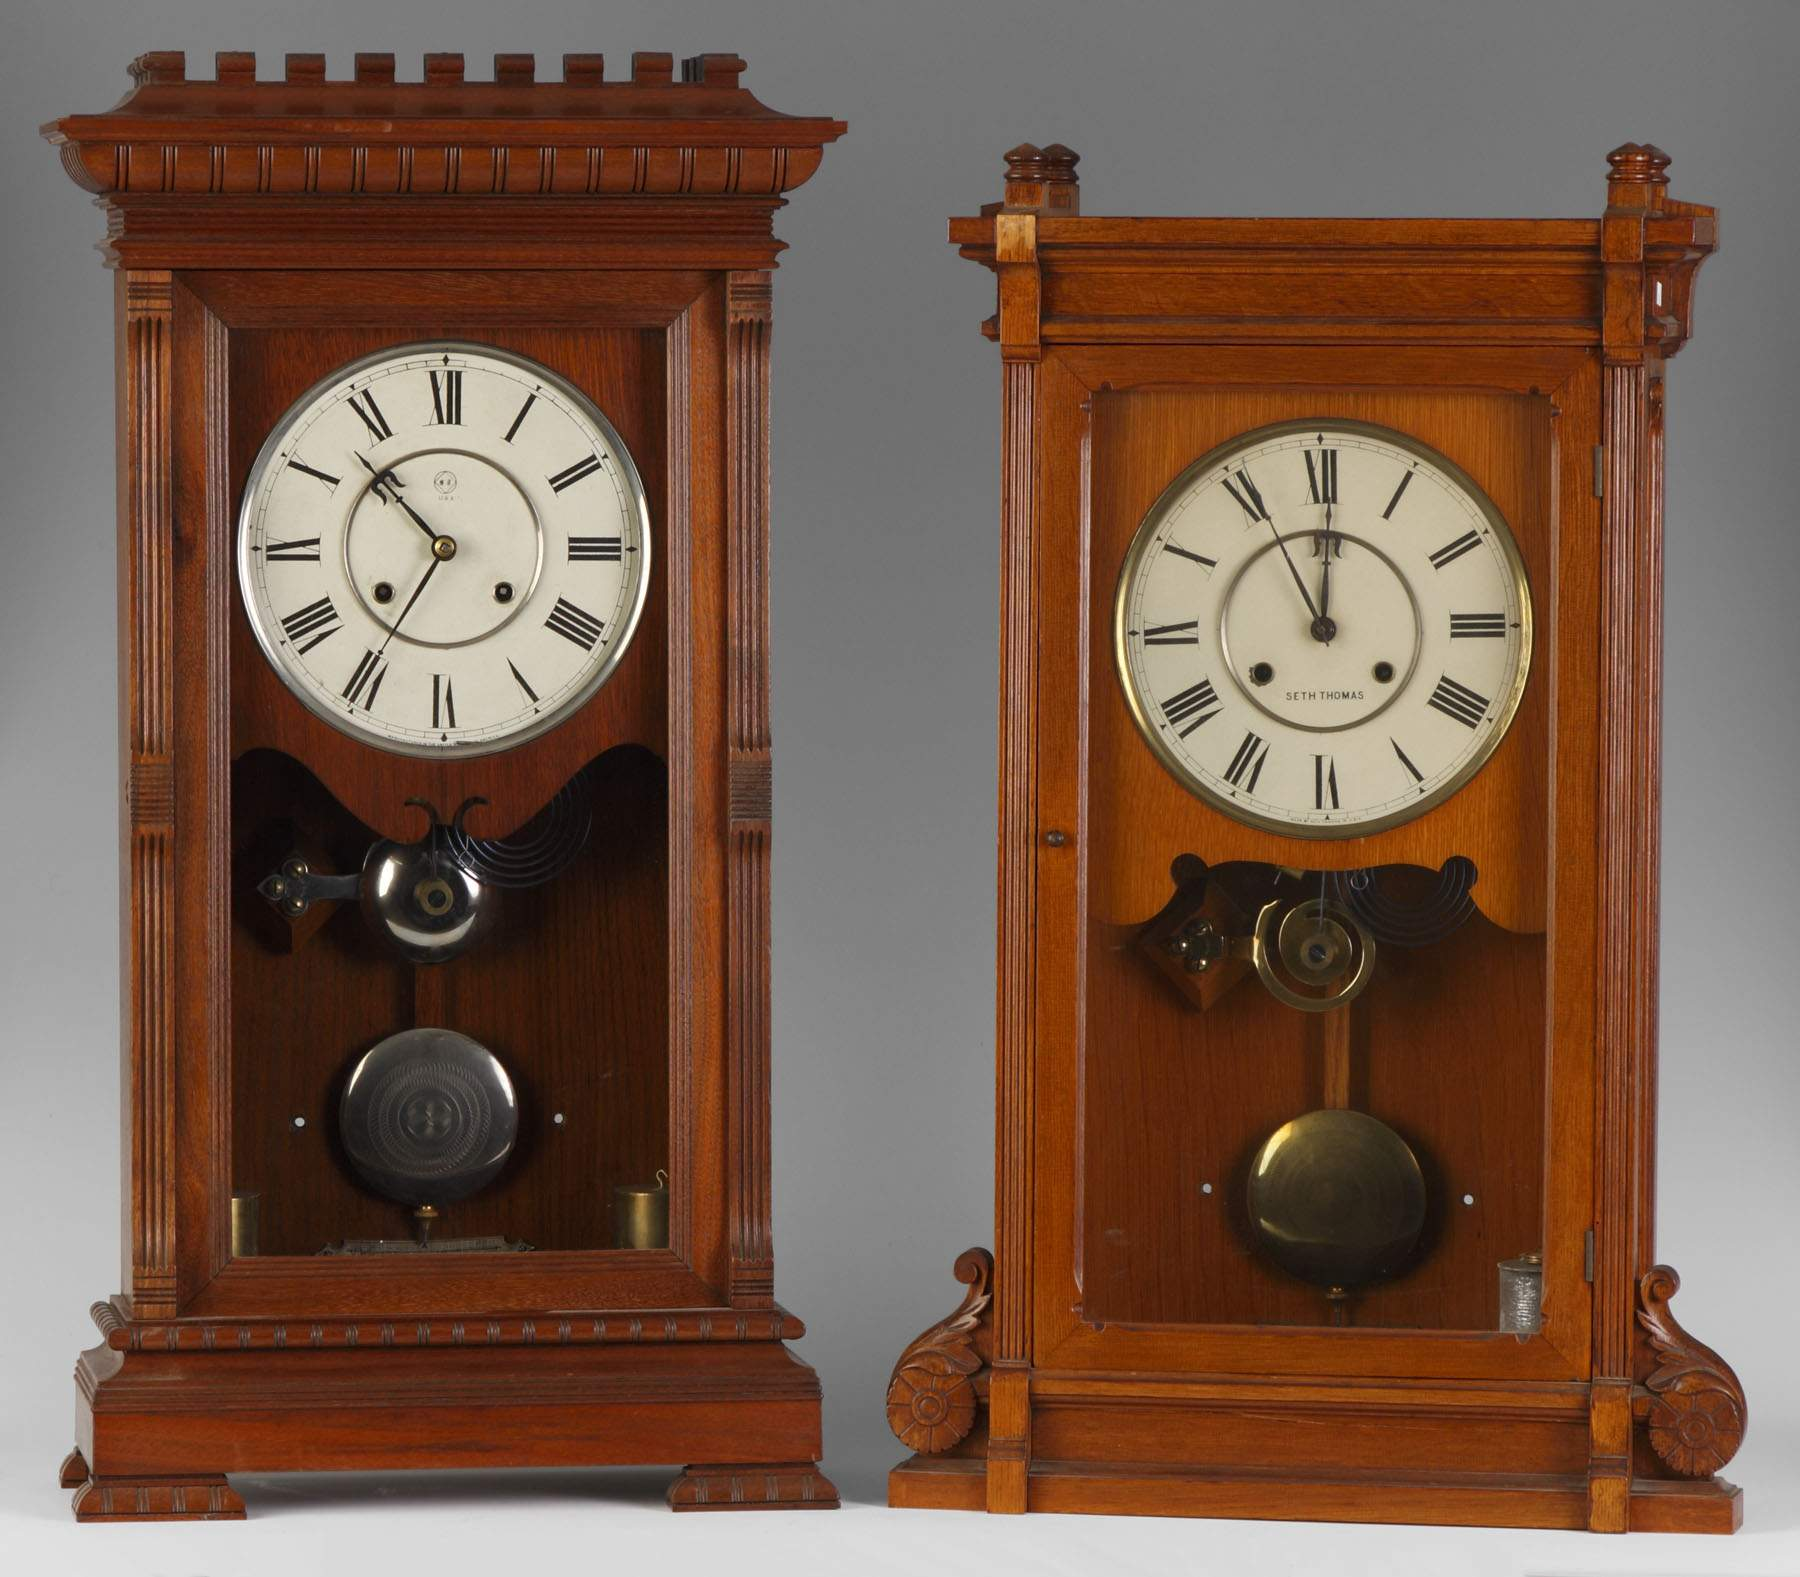 Seth thomass for sale prices appraisals auctions rochester ny 24 2 seth thomas shelf clocks amipublicfo Choice Image